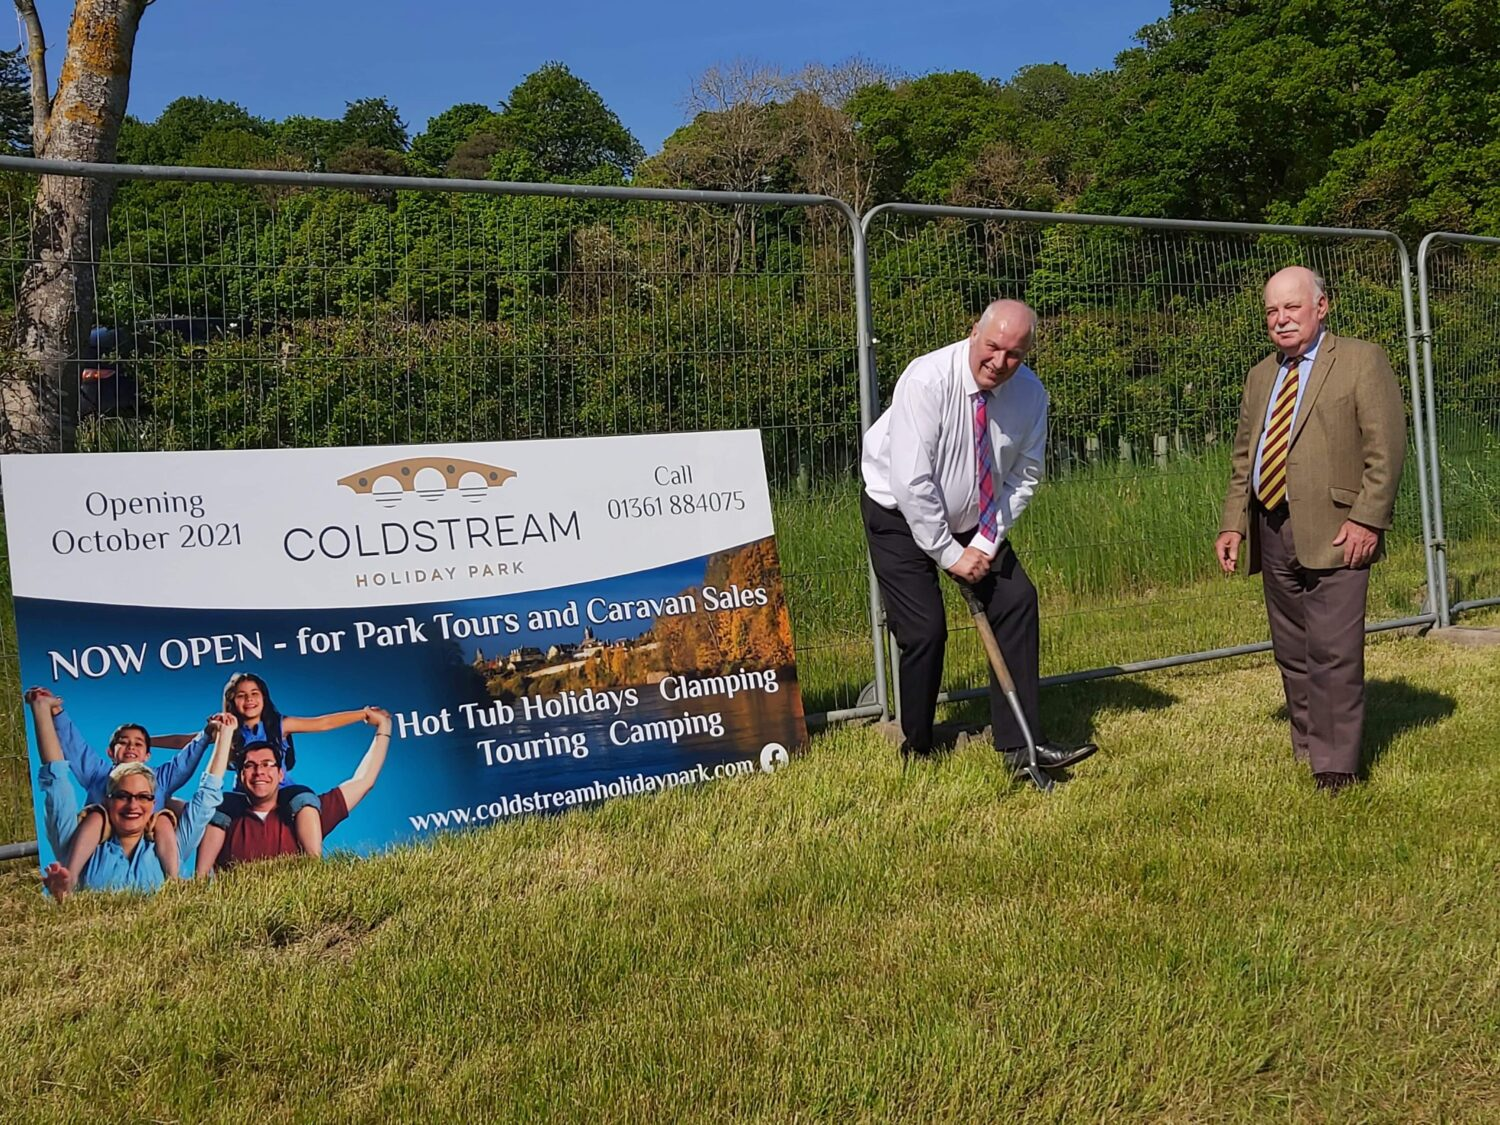 Coldstream holiday park news - Cutting the Turf